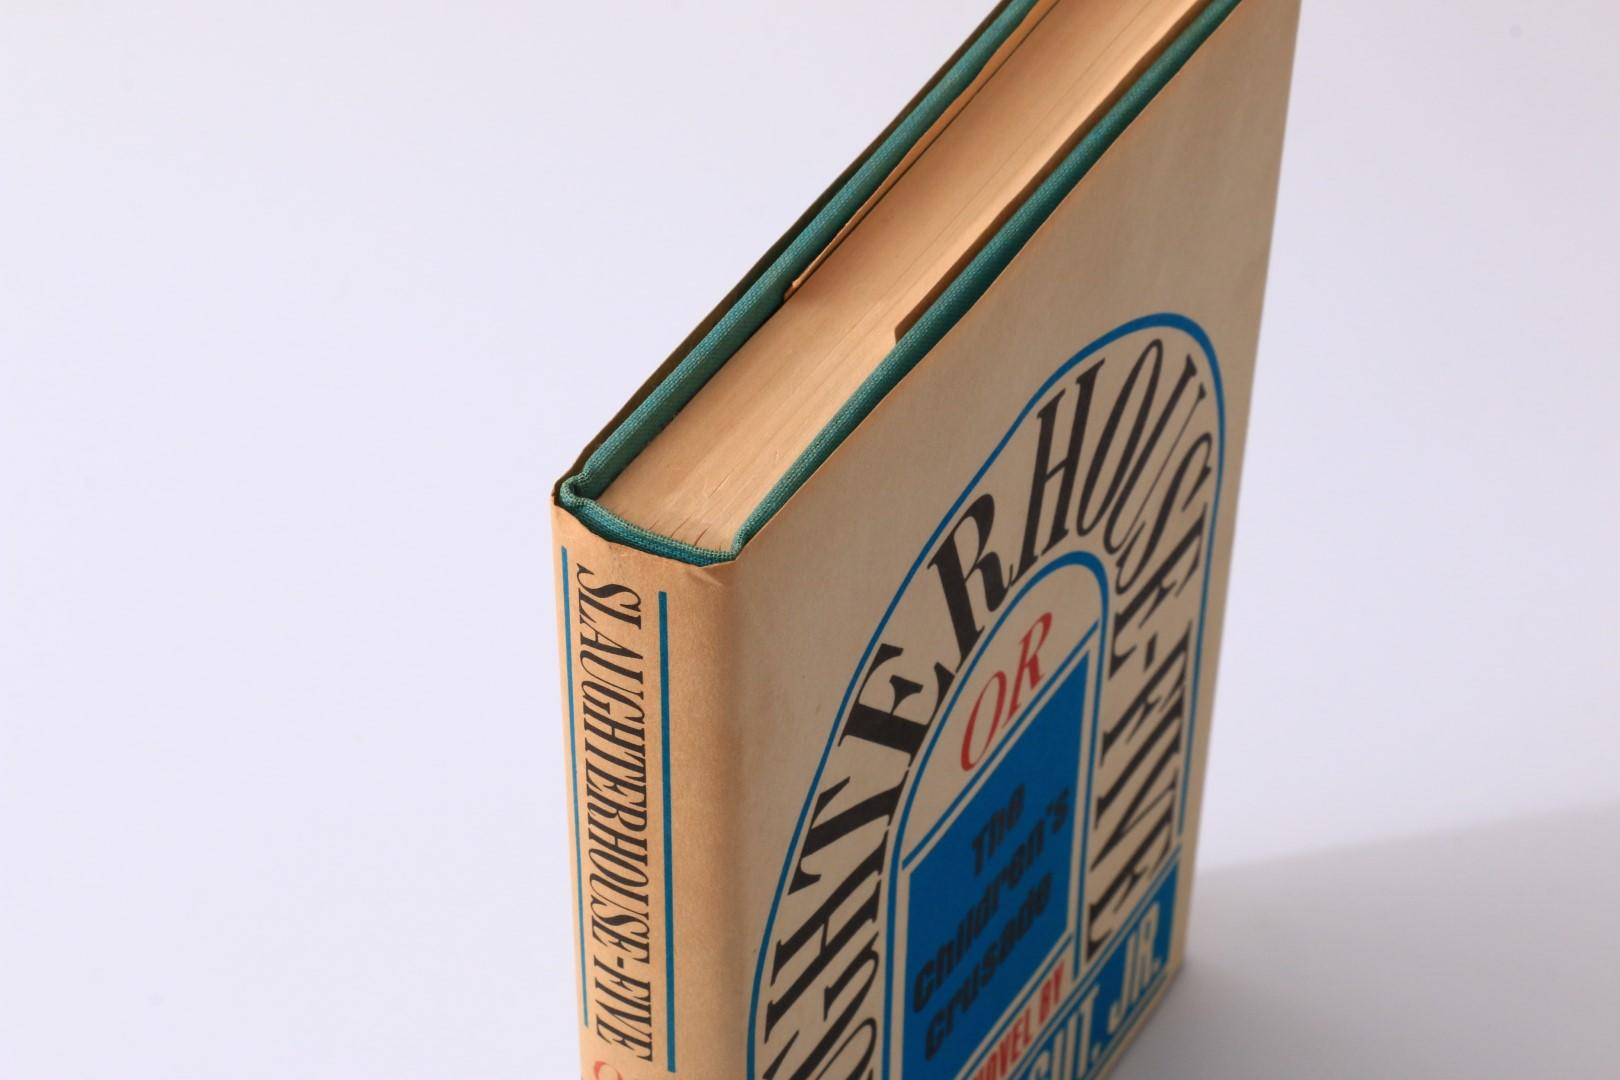 Kurt Vonnegut - Slaughterhouse-Five or the Children's Crusade - Delacorte Press, 1969, First Edition.